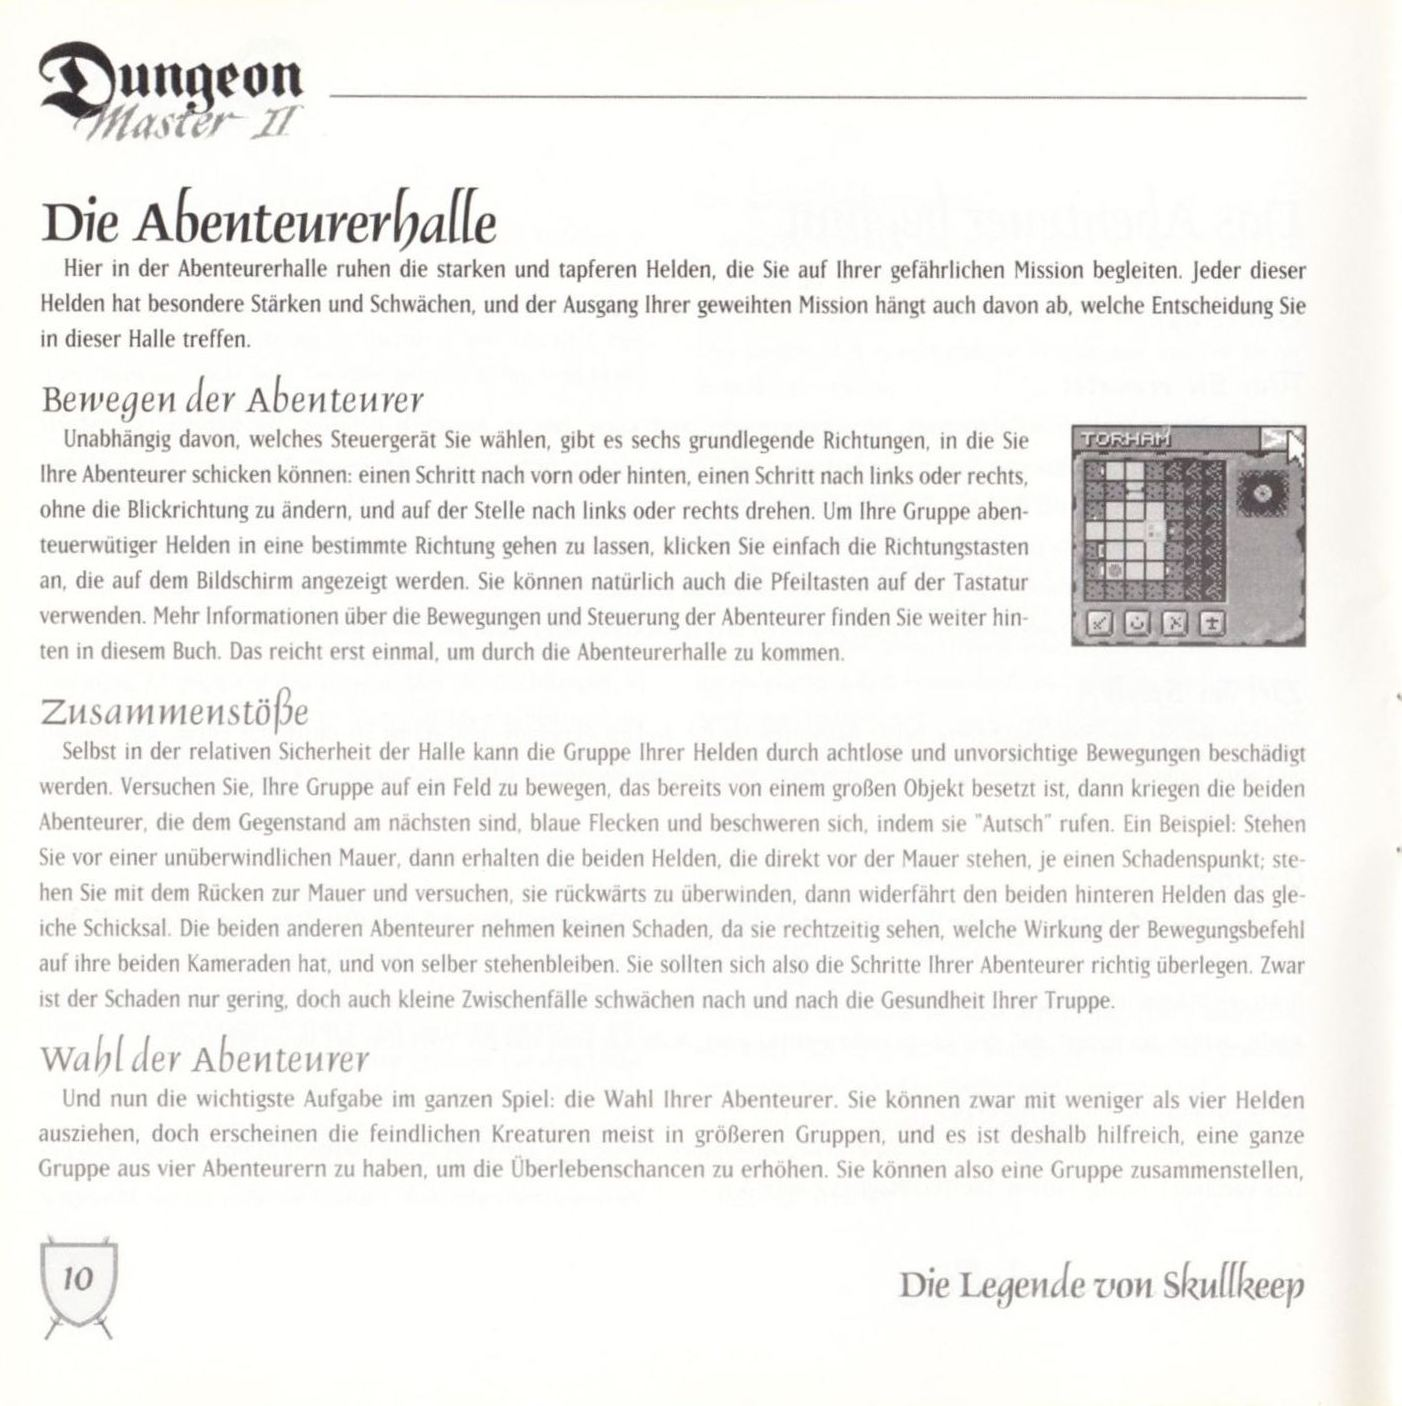 Game - Dungeon Master II - DE - PC - Blackmarket With Booklet - Booklet - Page 012 - Scan